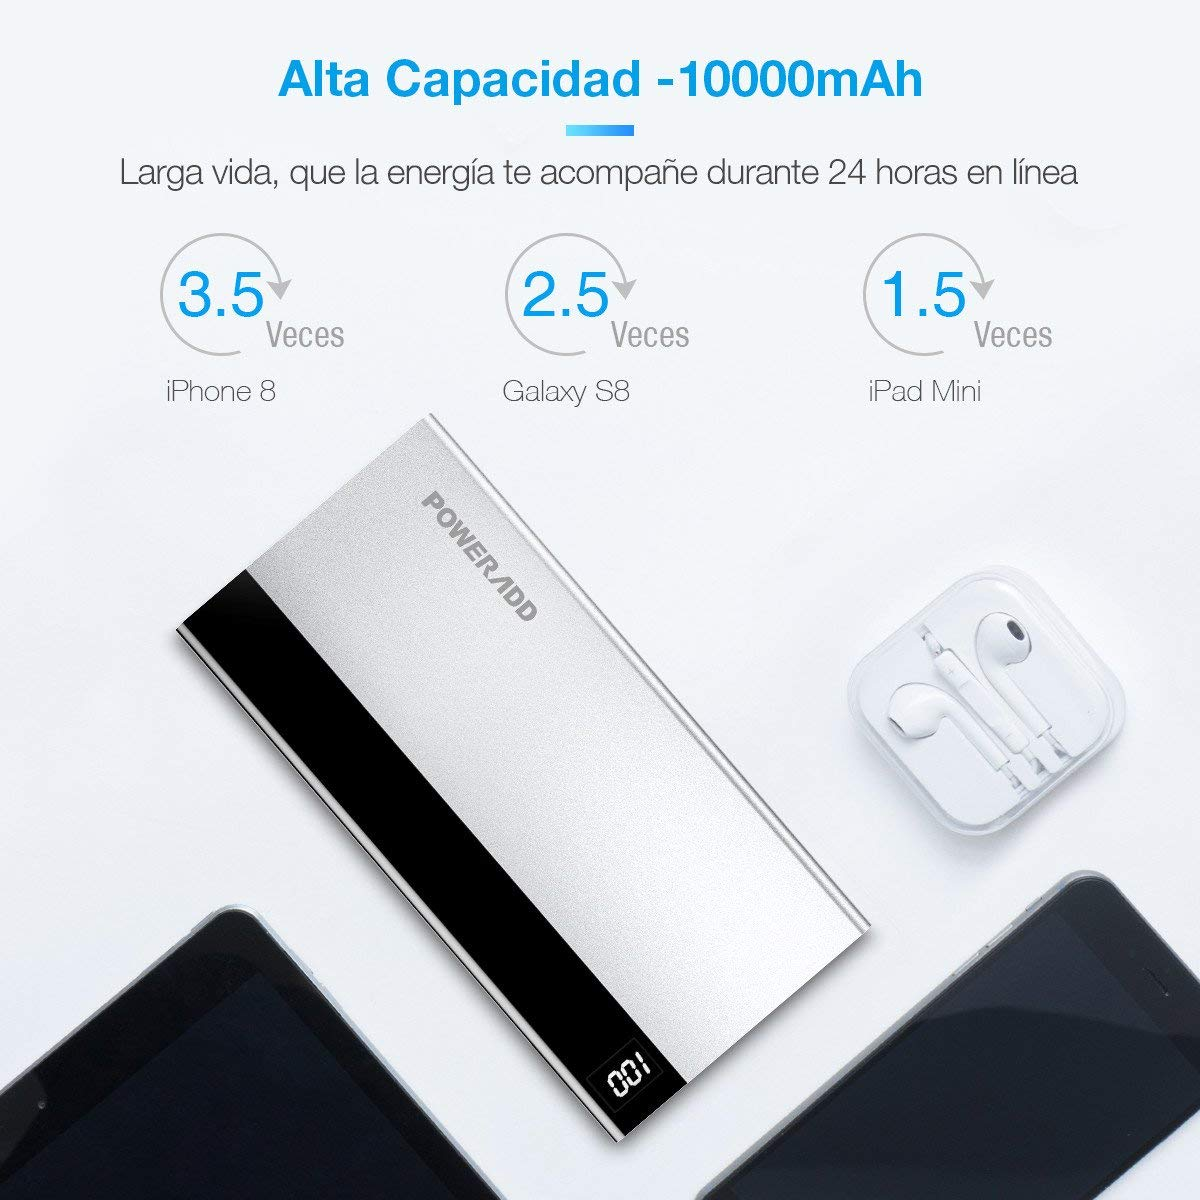 Poweradd USB Type-C Power Bank de 10000mAh con Pantalla LED Digital Cargador Portátil Type C de Entrada y Salida (Cable USB Tipo C y Micro Cable Incluidos)